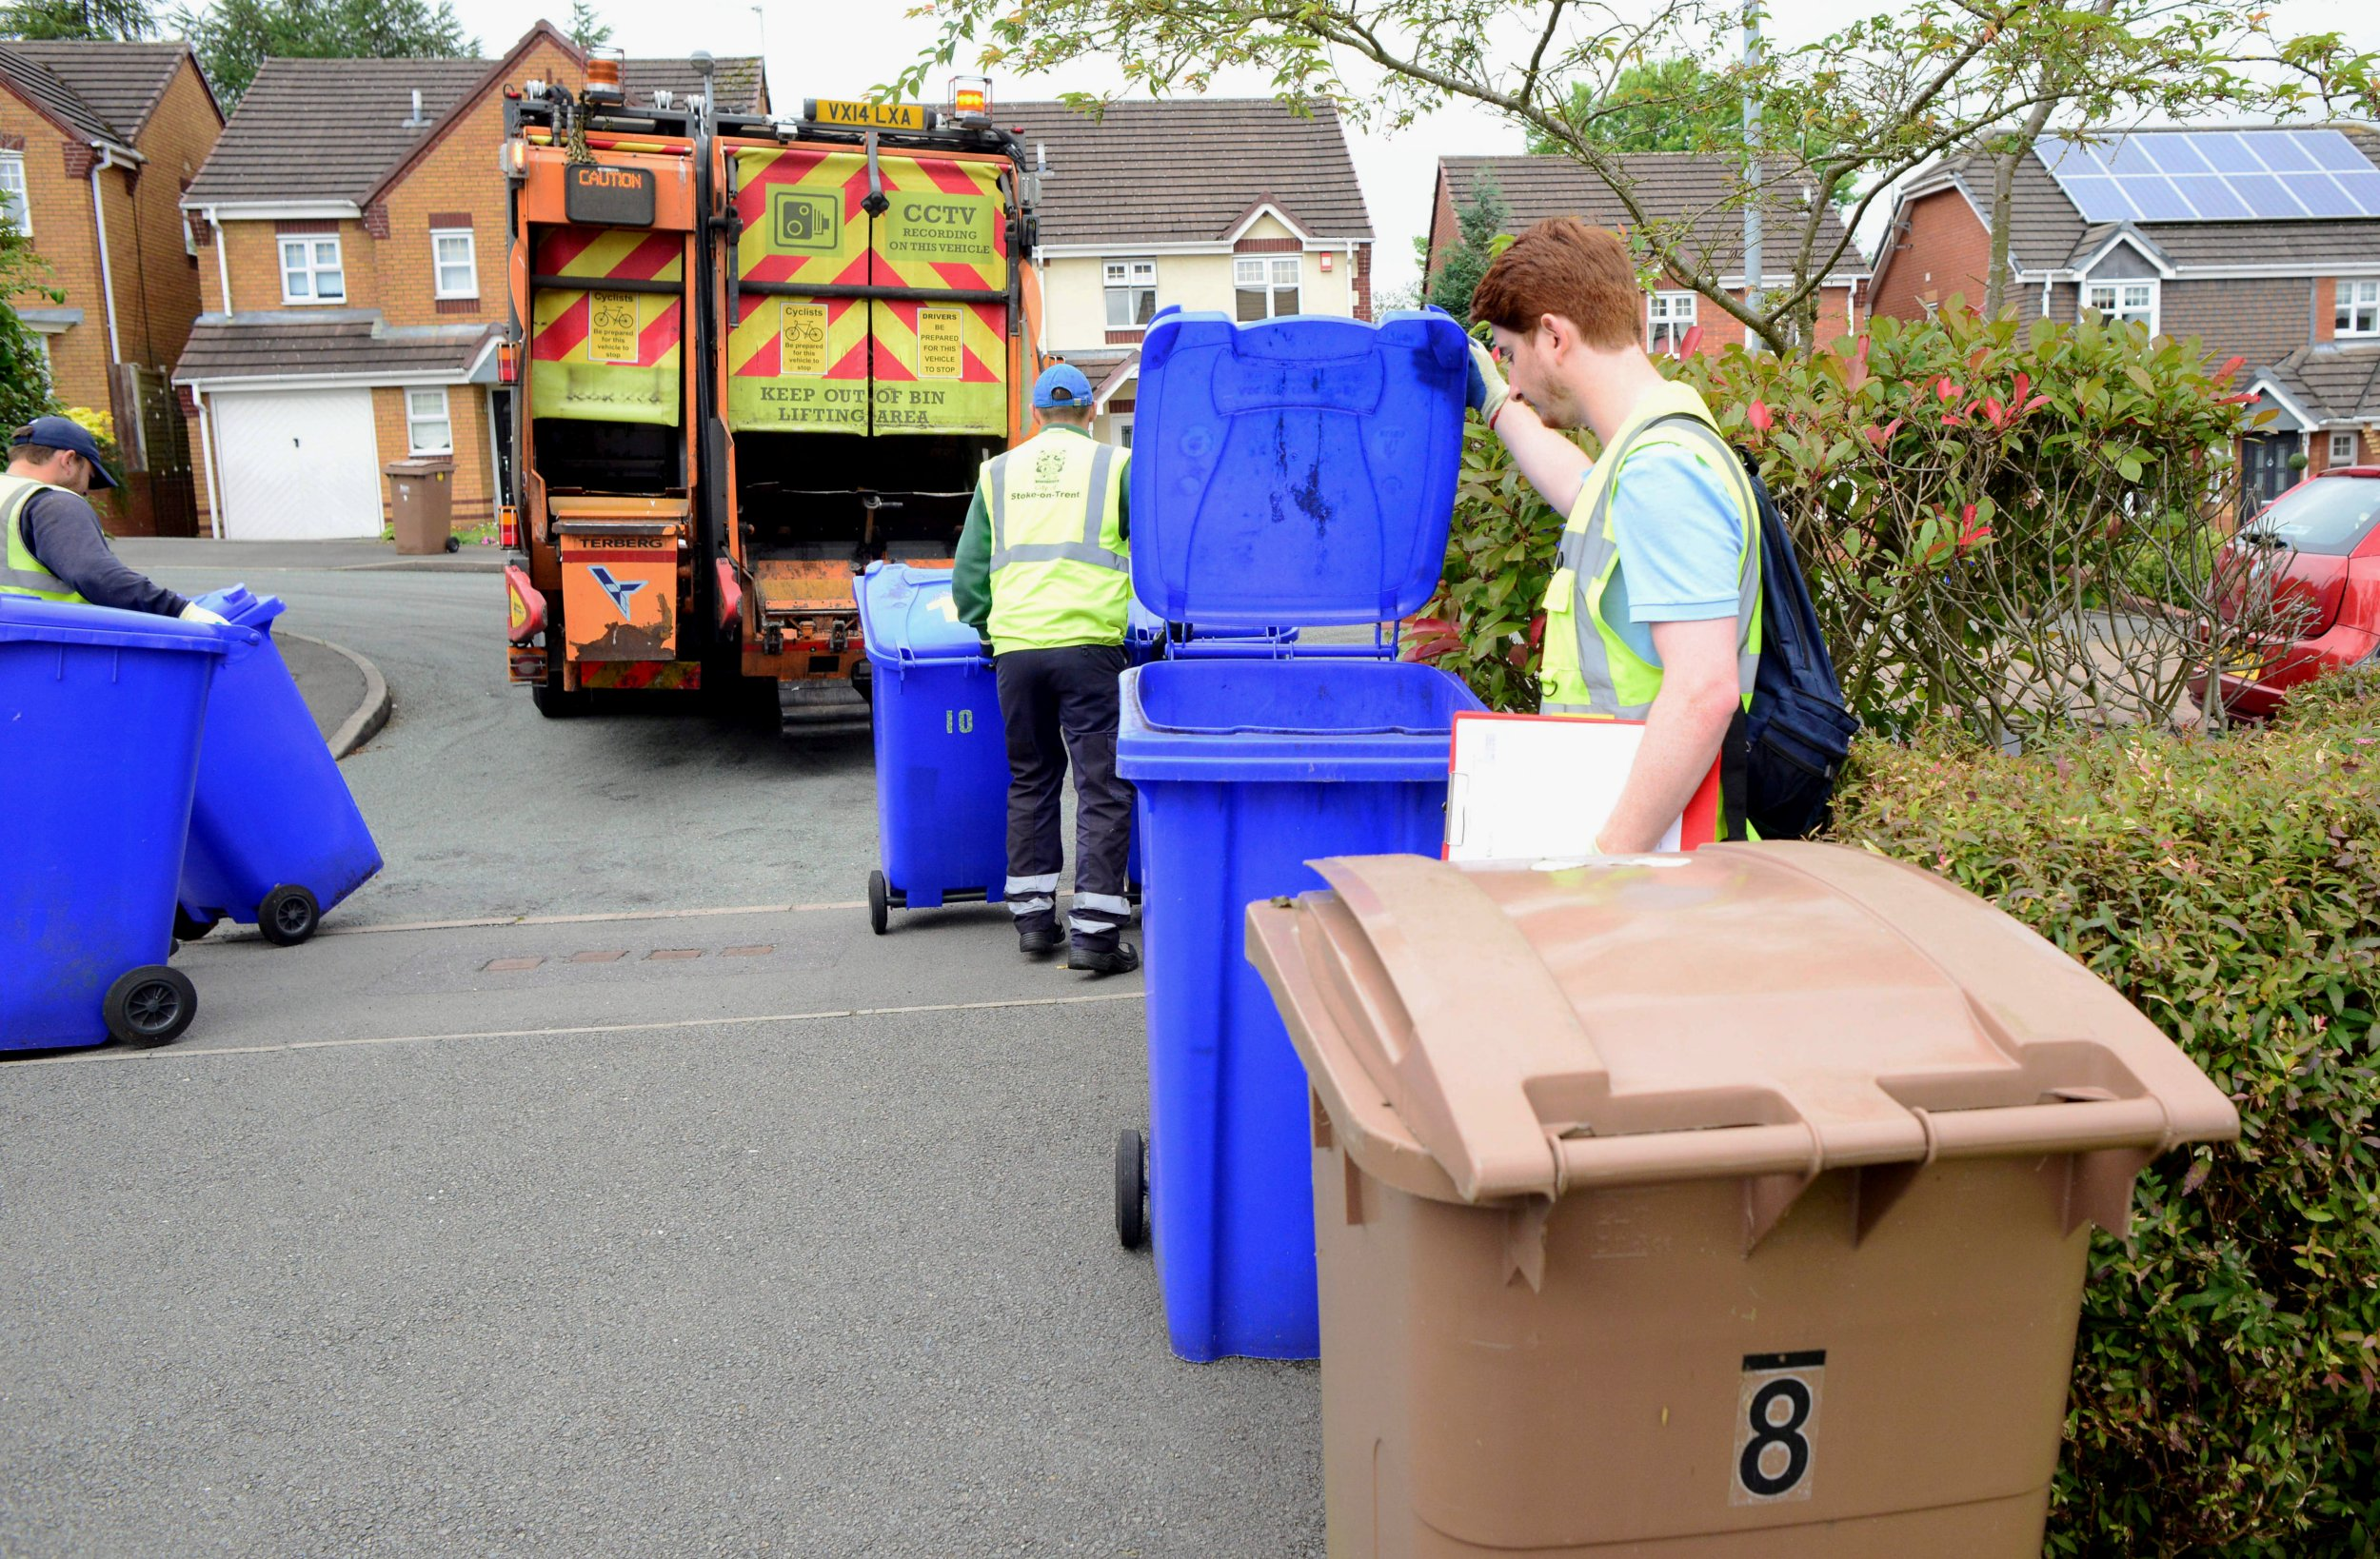 "Waste minimisation office Matthew Lowe checks bins in Stoke-on-Trent, Staffordshire. See News Team story NTIBINS; A council has been blasted for spending £100,000 of taxpayers' cash setting up a 'bin police' team to snoop on residents' RUBBISH. Stoke-on-Trent City Council has taken on the ""waste minimisation"" staff to sift through the contents of blue wheelie bins in a bid to boost its recycling rates. The authority says the six-strong 'bin police' team comes after some families have dumped soiled nappies, sanitary products and other similar items in their recycling. Every household in the area will now be issued with a guide on what they can place in their grey, brown and blue containers. Anyone caught breaching the rules will find a yellow 'warning notice' on their bin meaning their waste may not be collected. Yesterday (Wed), residents blasted the new 'bin police' as ""over the top"" and an ""invasion of privacy""."